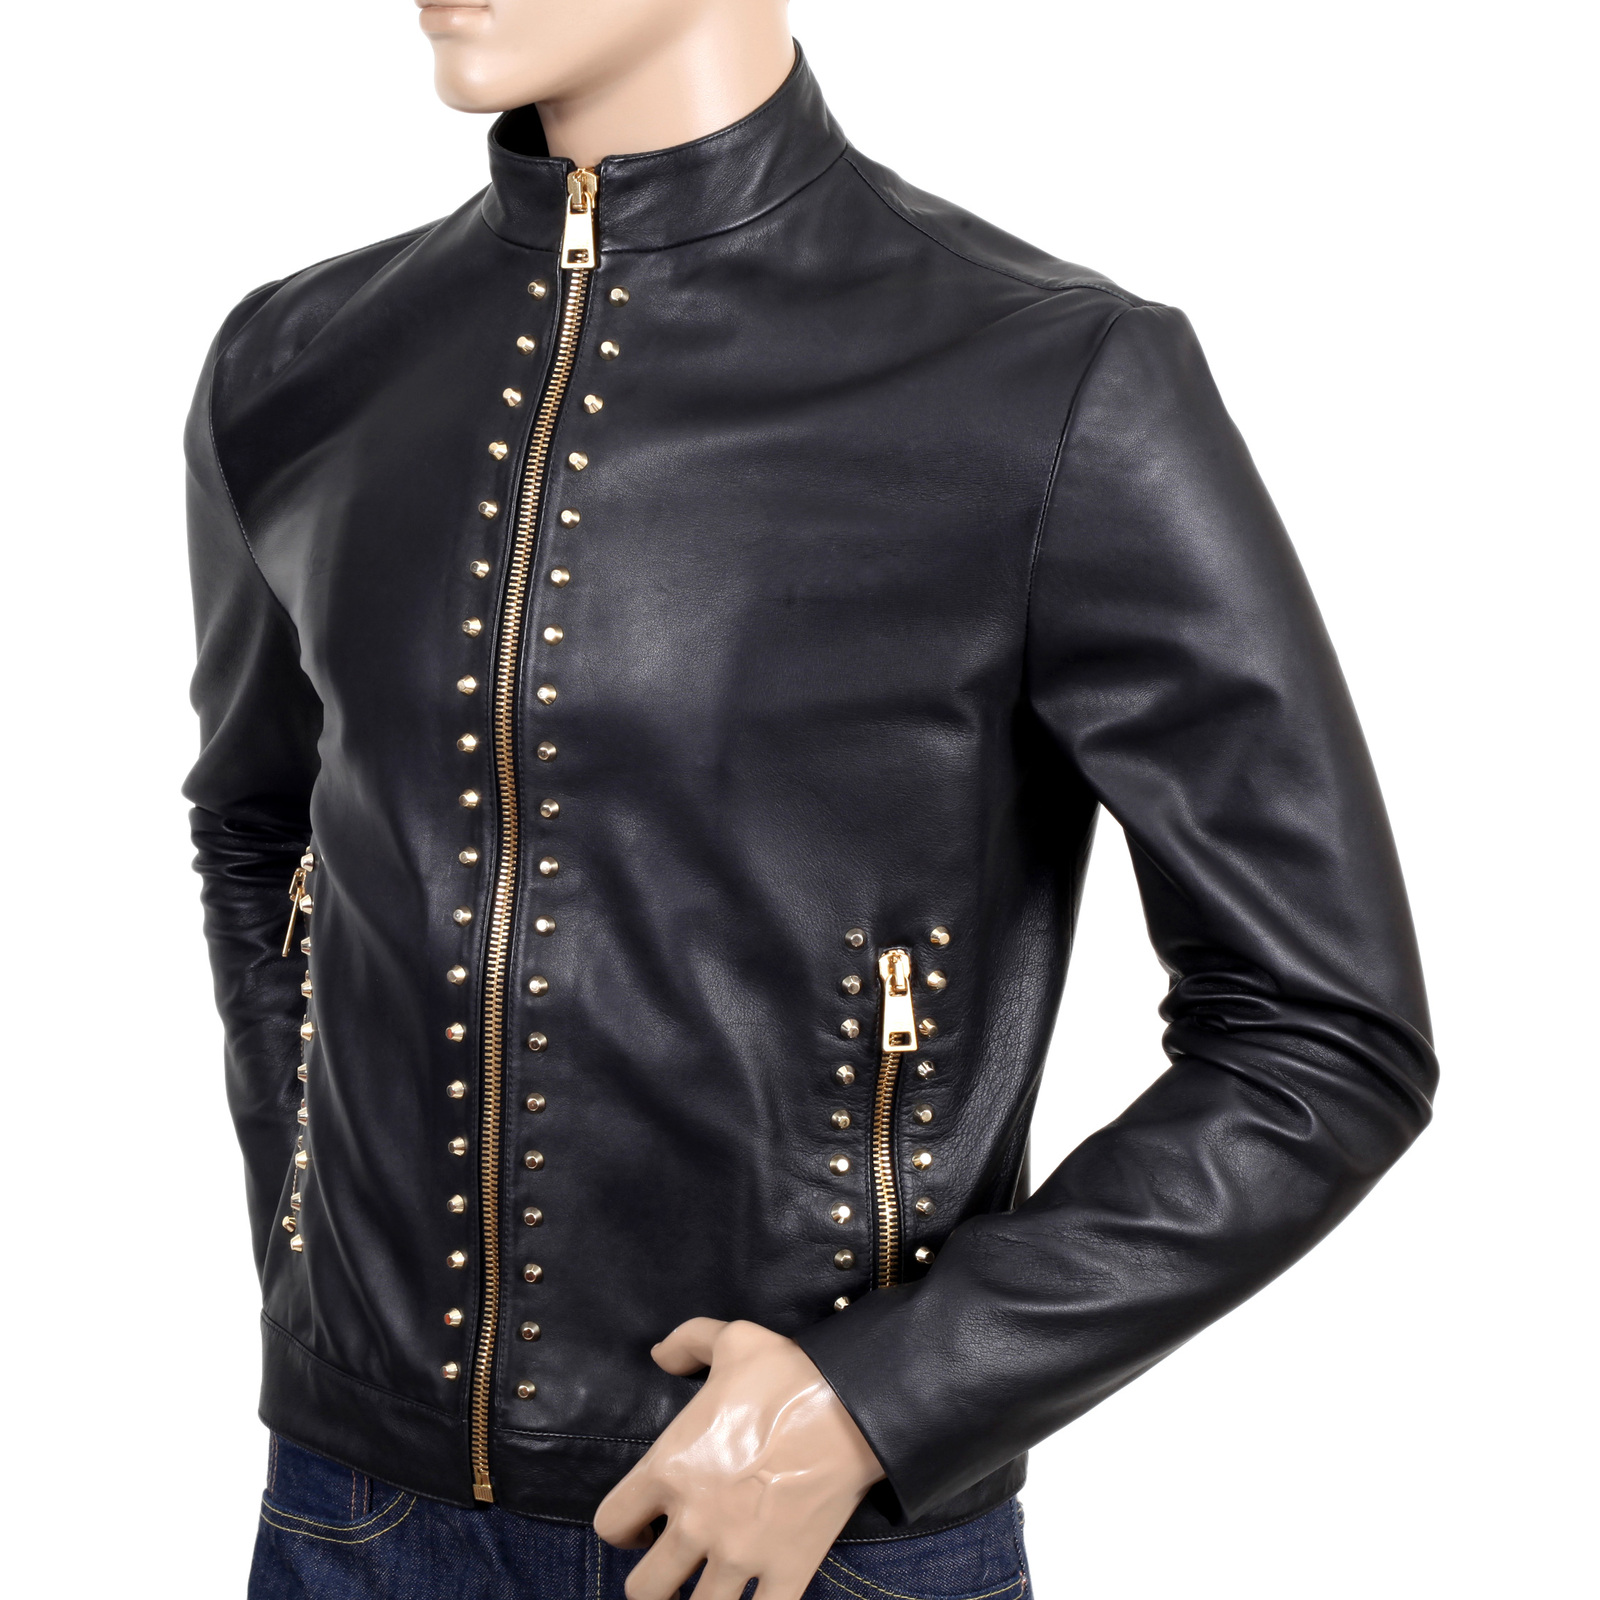 Buy Versace Mens Black Studded Leather Jacket Togged